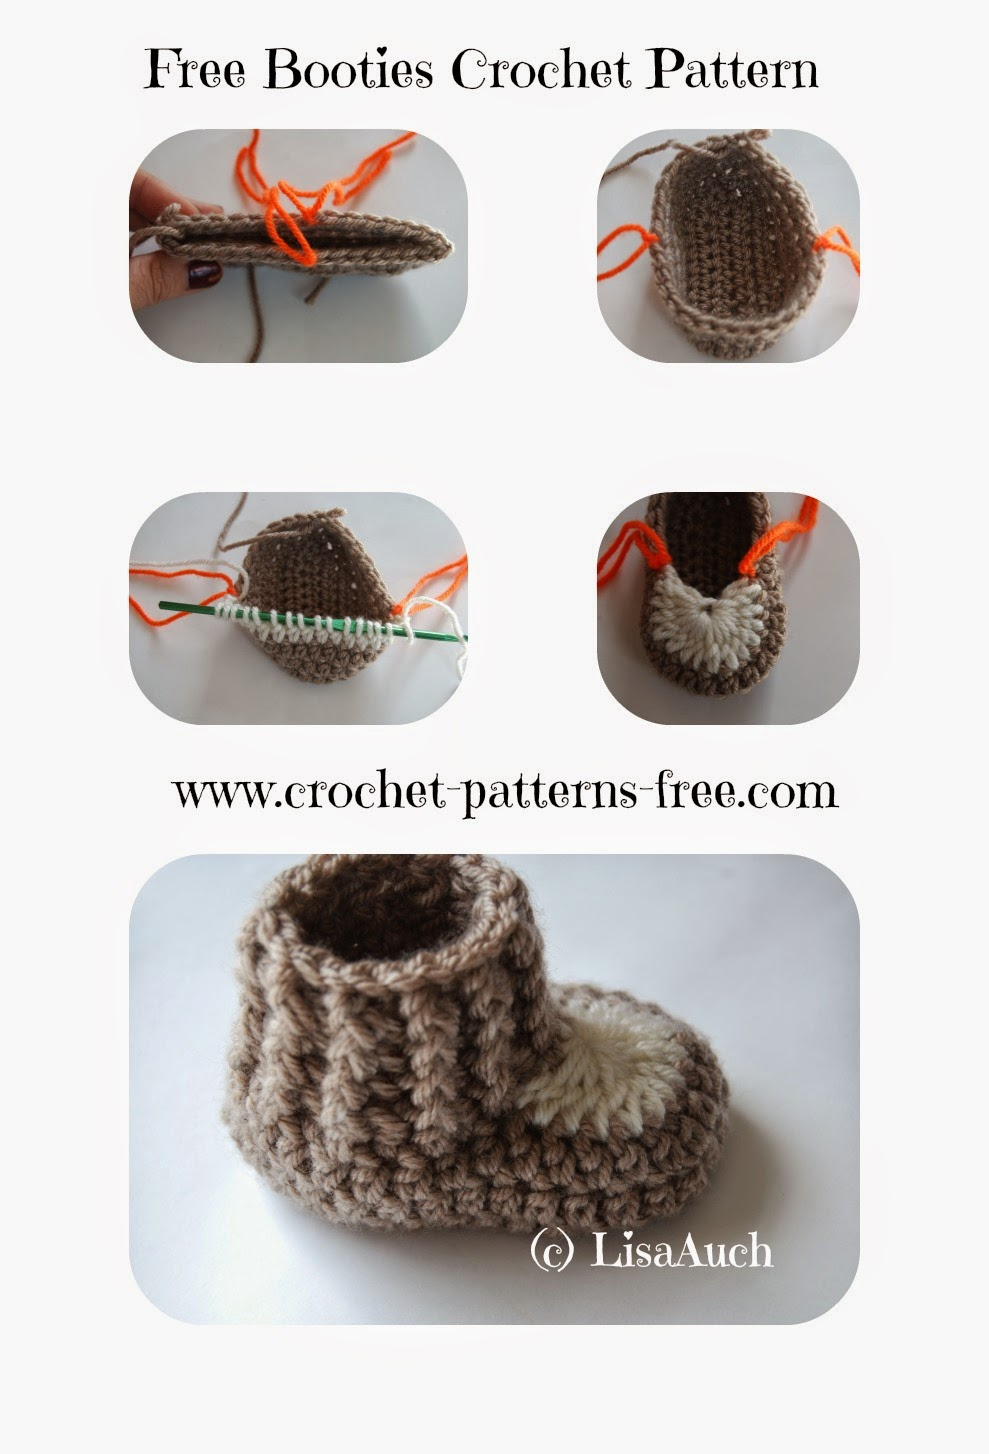 10 minute Easy Crochet Booties Pattern | Free Crochet Patterns and ...